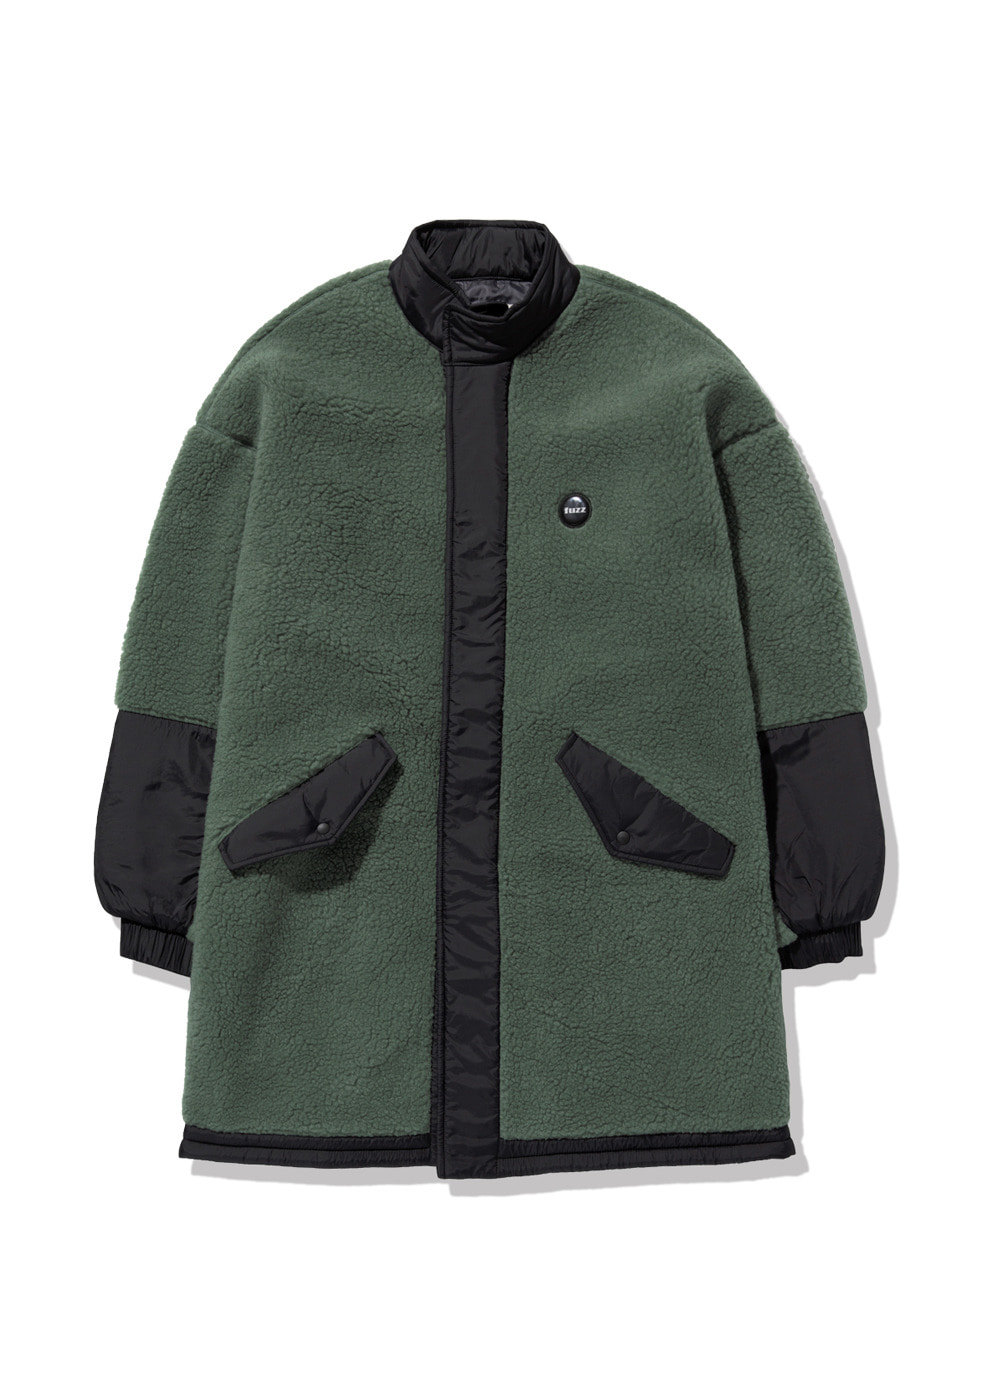 FUZZ BOA M65 COAT light olive